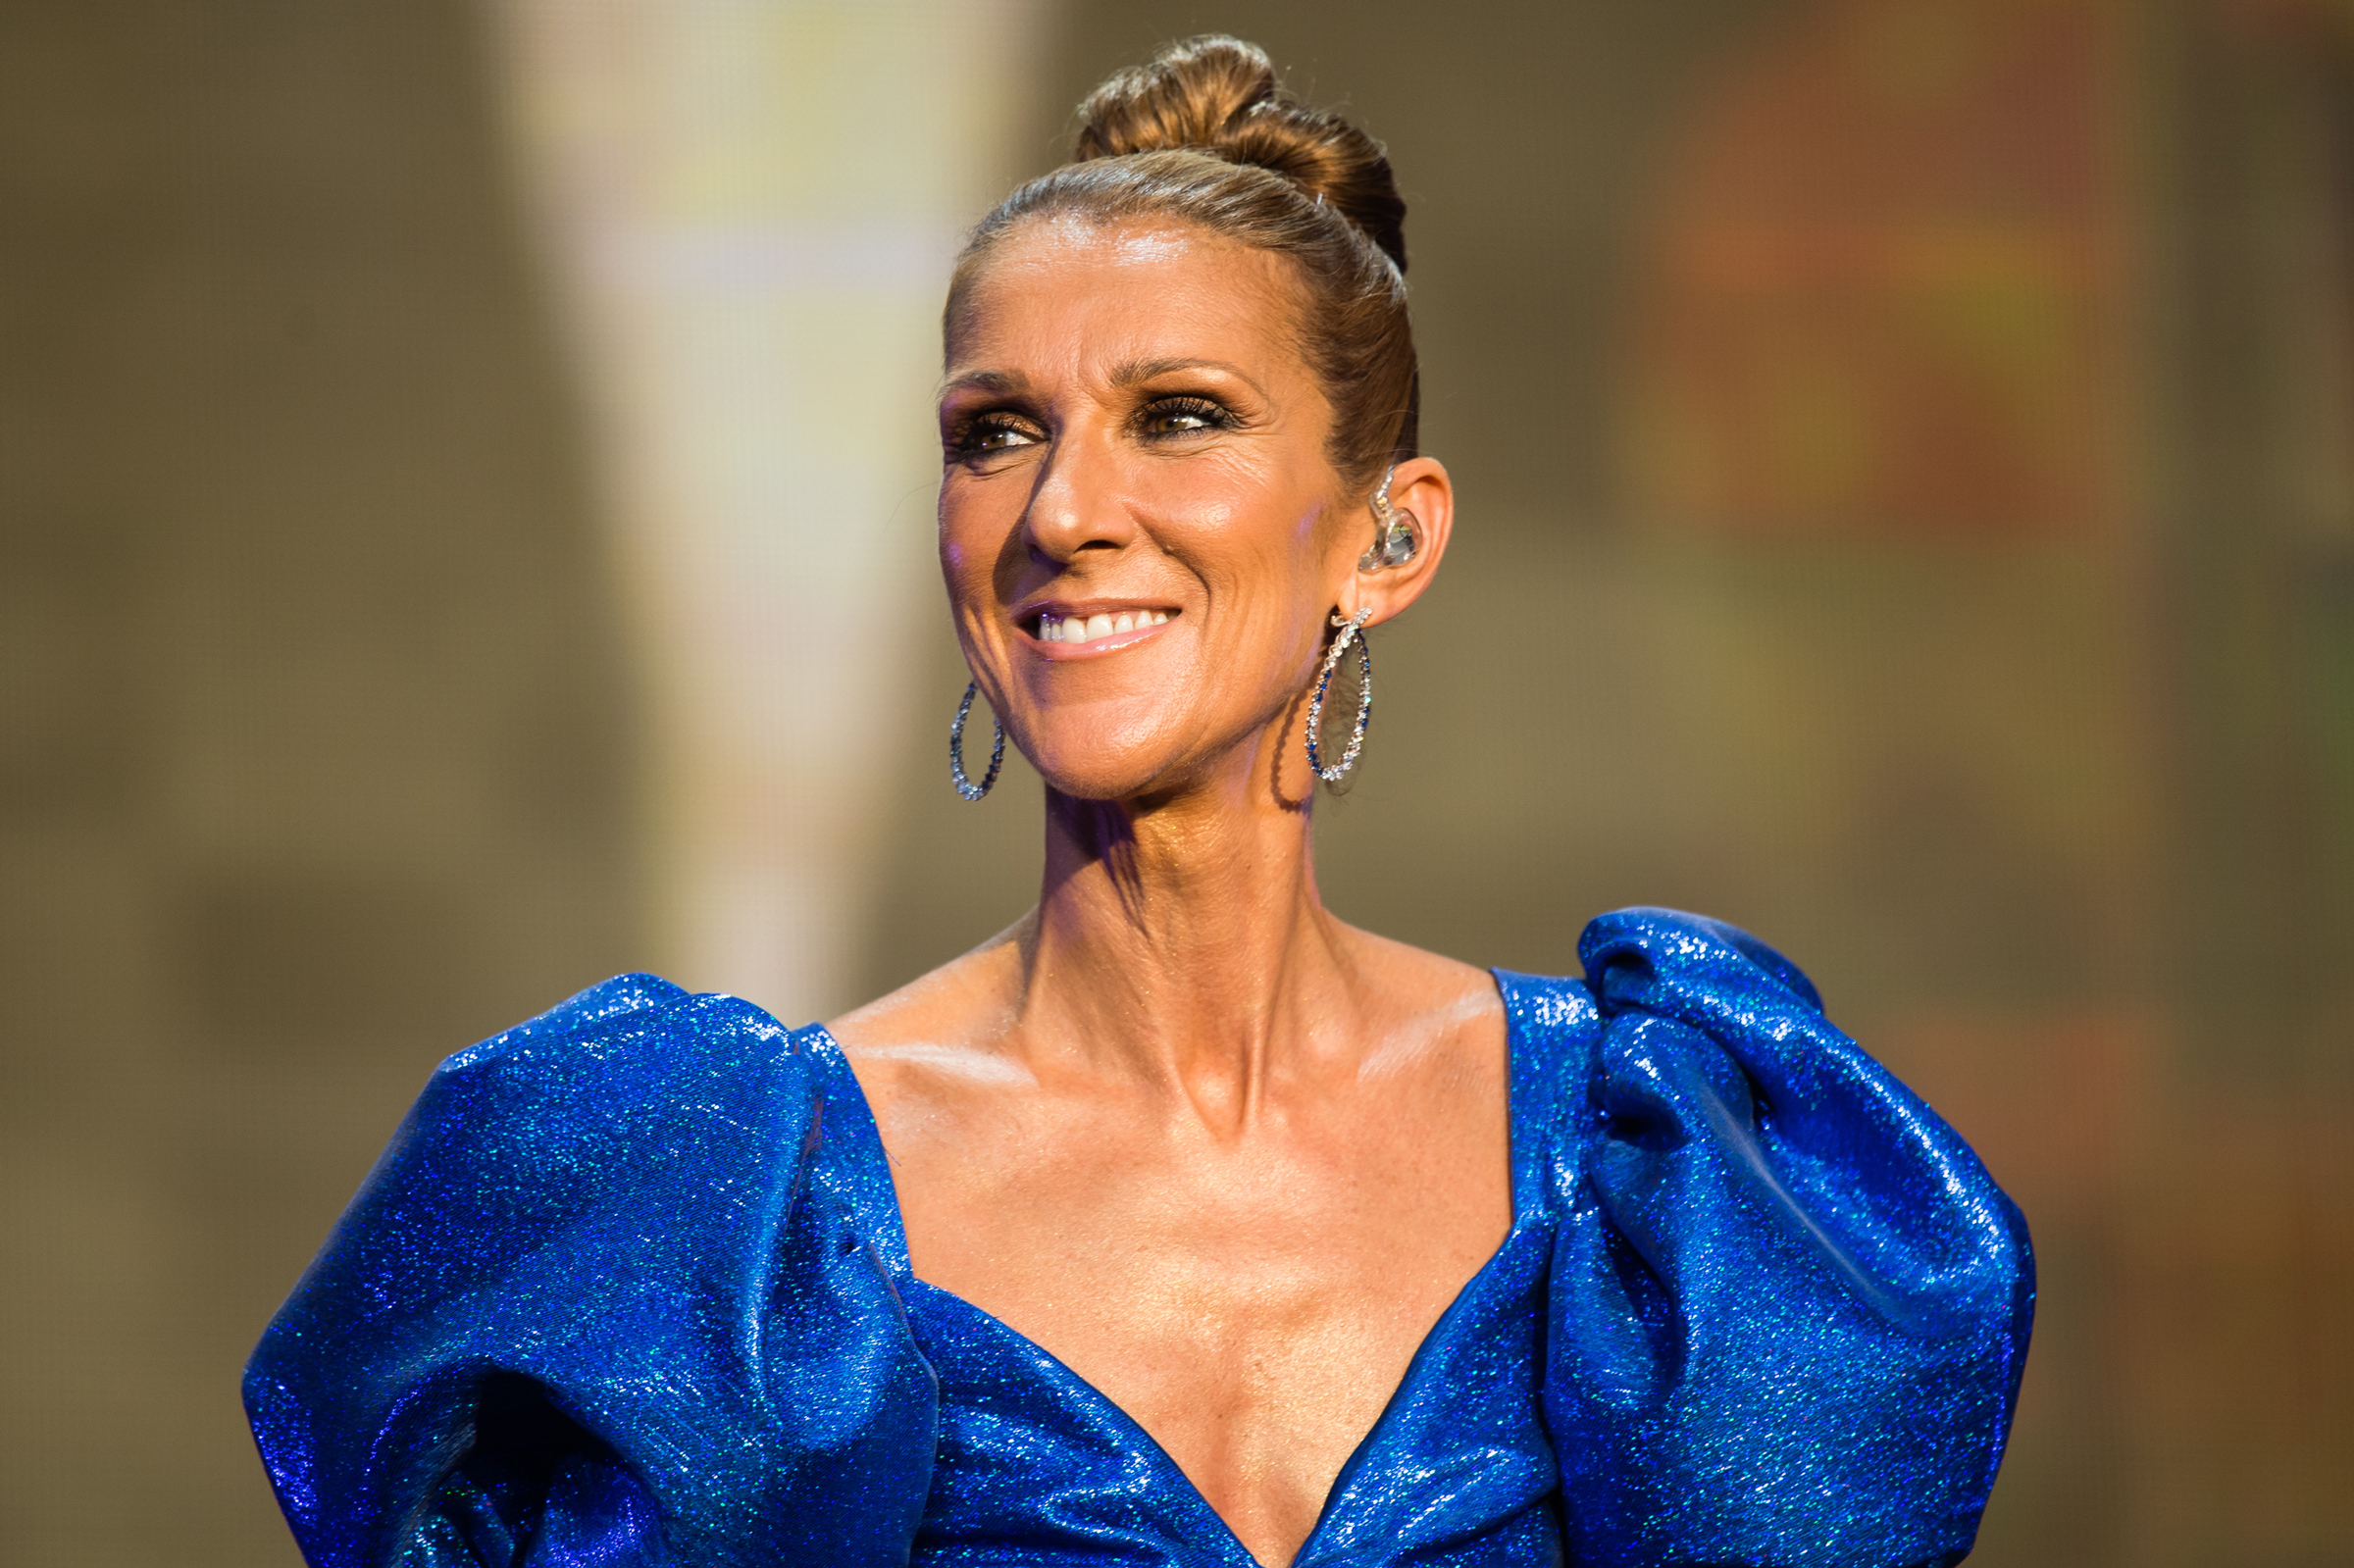 Celine Dion Cancels Las Vegas Shows Due To Medical Issues